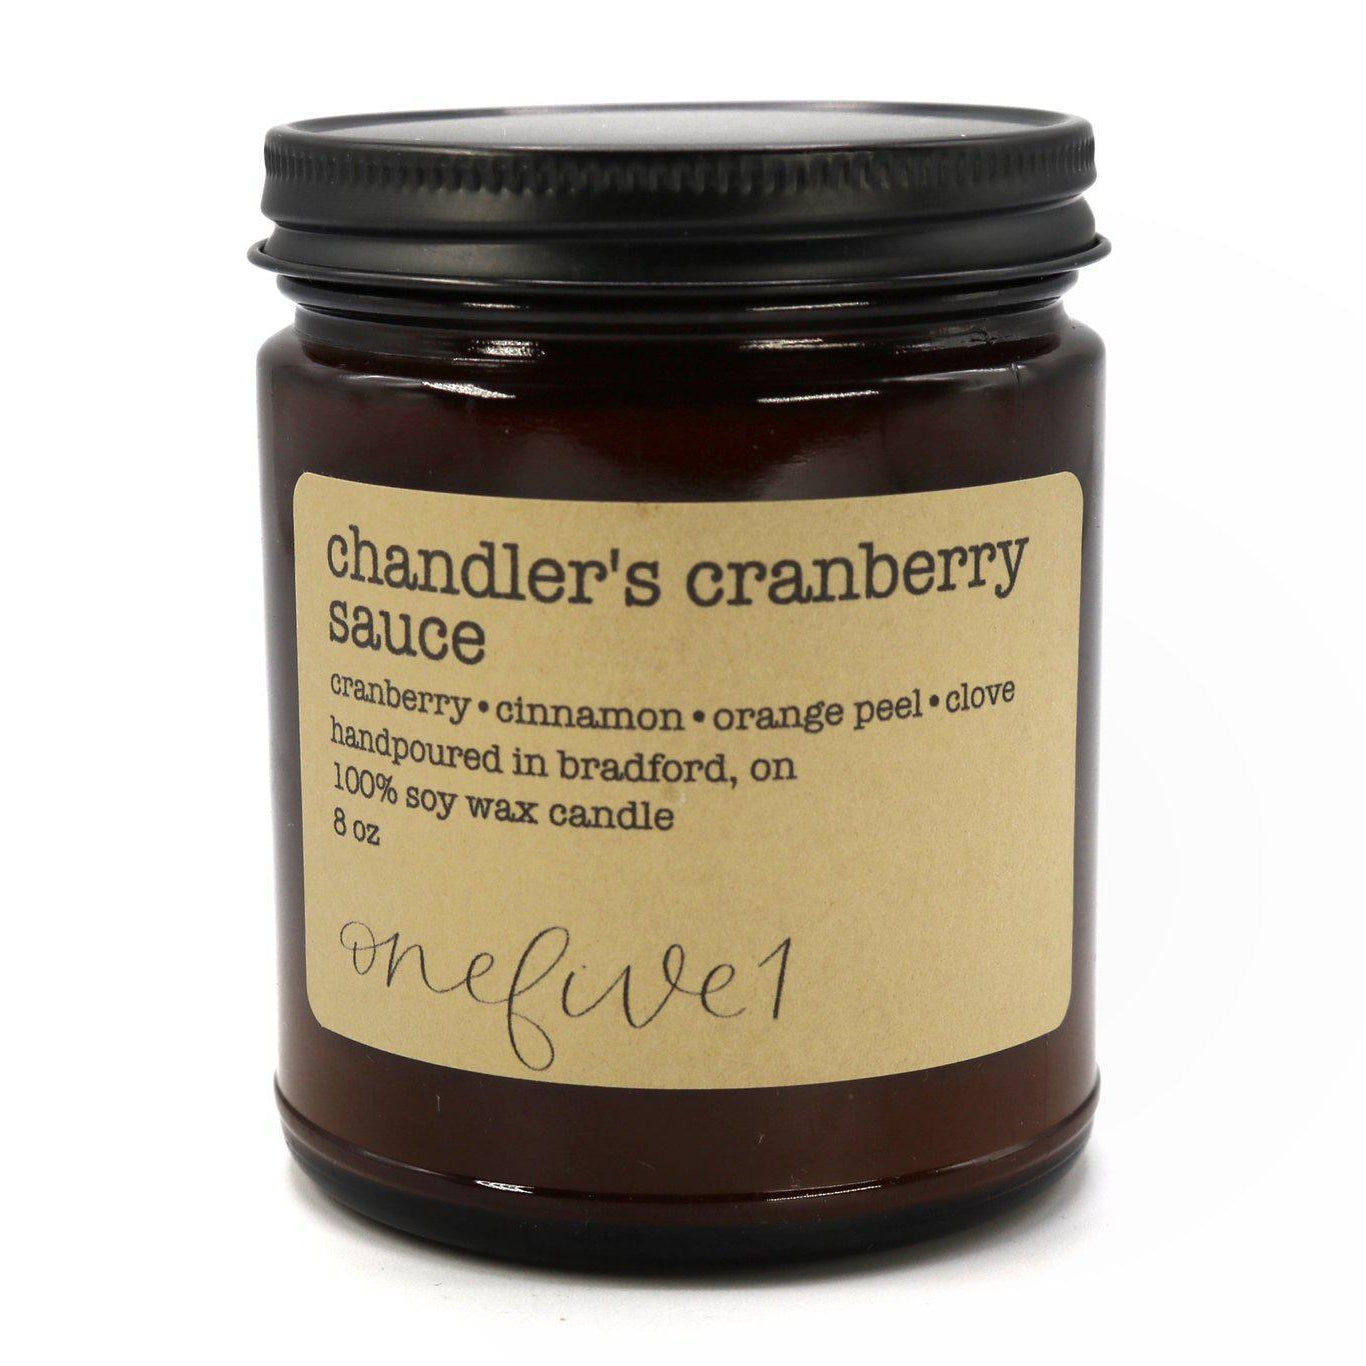 Soy candle - Chandler's Cranberry Sauce - Cheerfetti Gift Co.